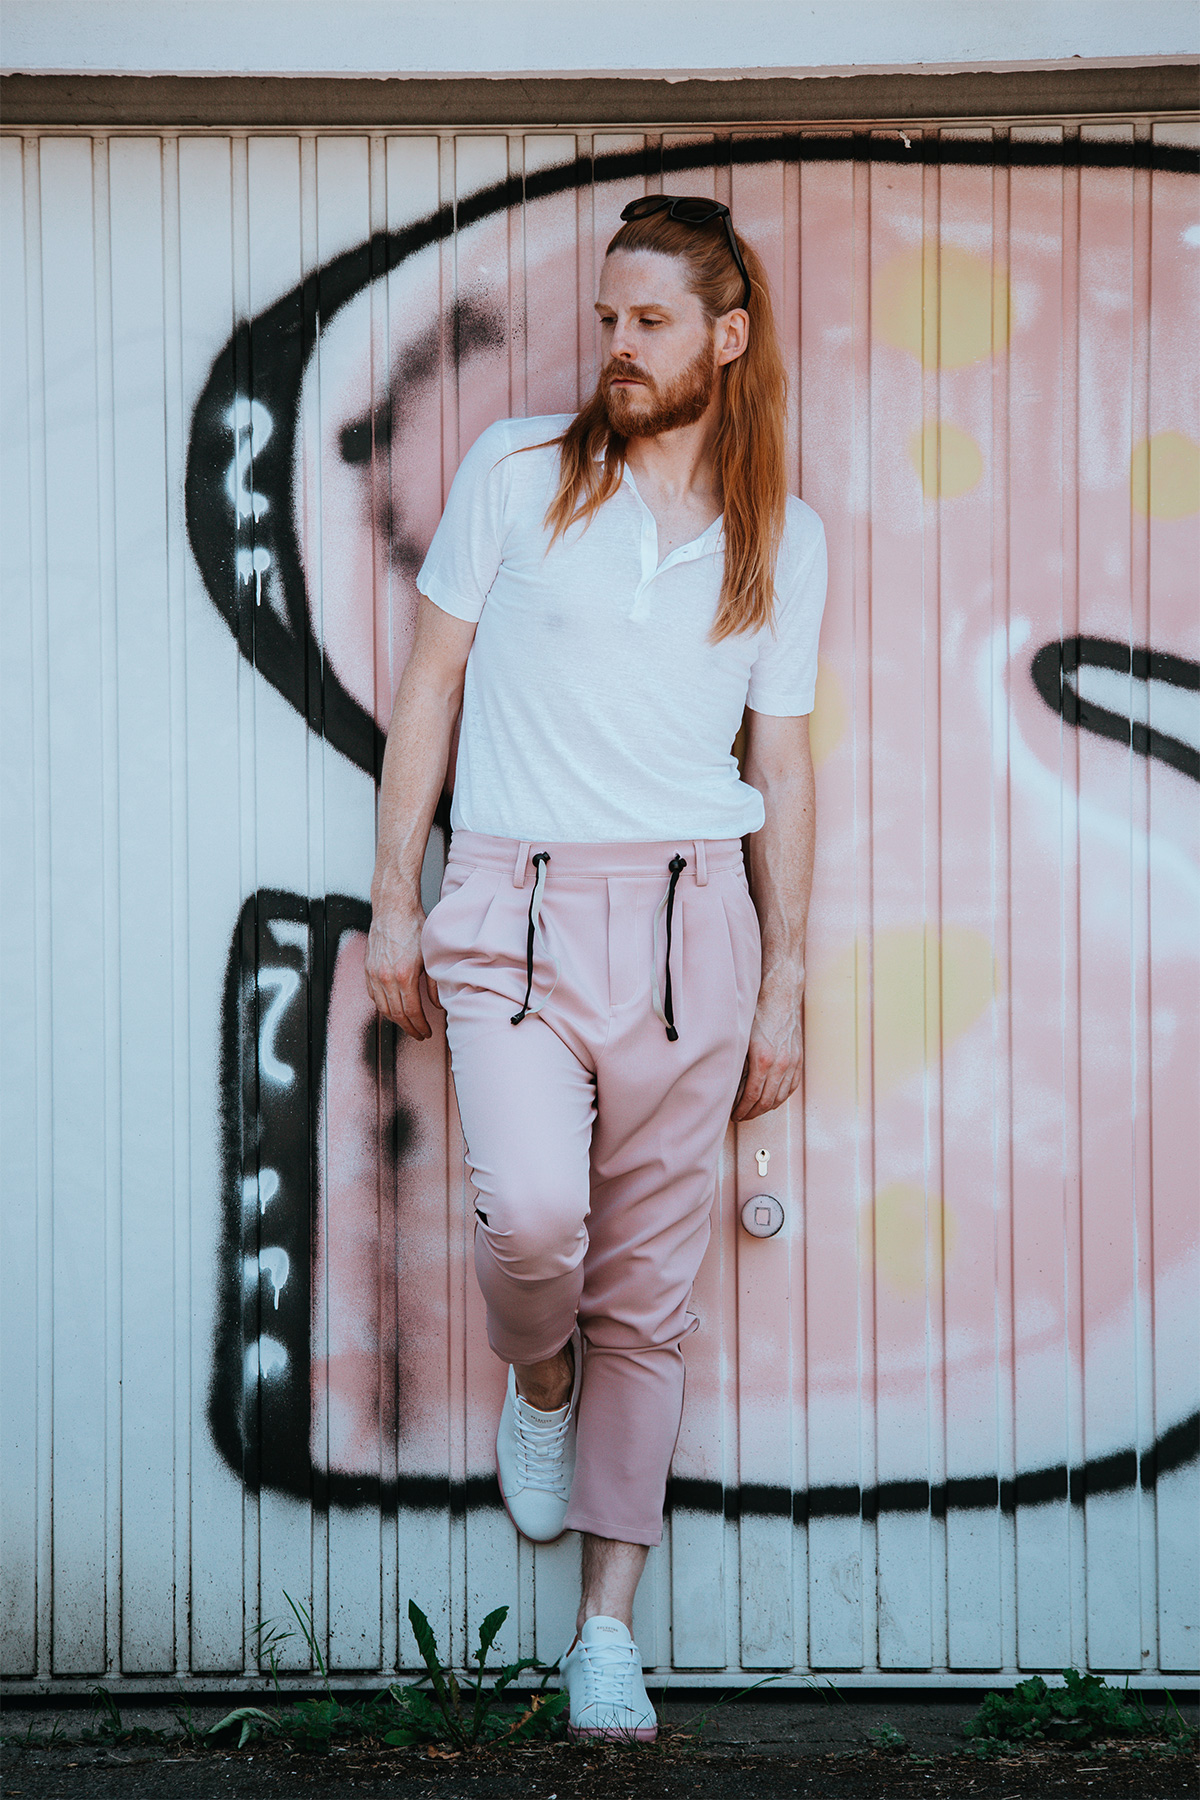 Sommerlook-Poloshirt-Snheaker-Maennermode-Fashion-Style-Influencer